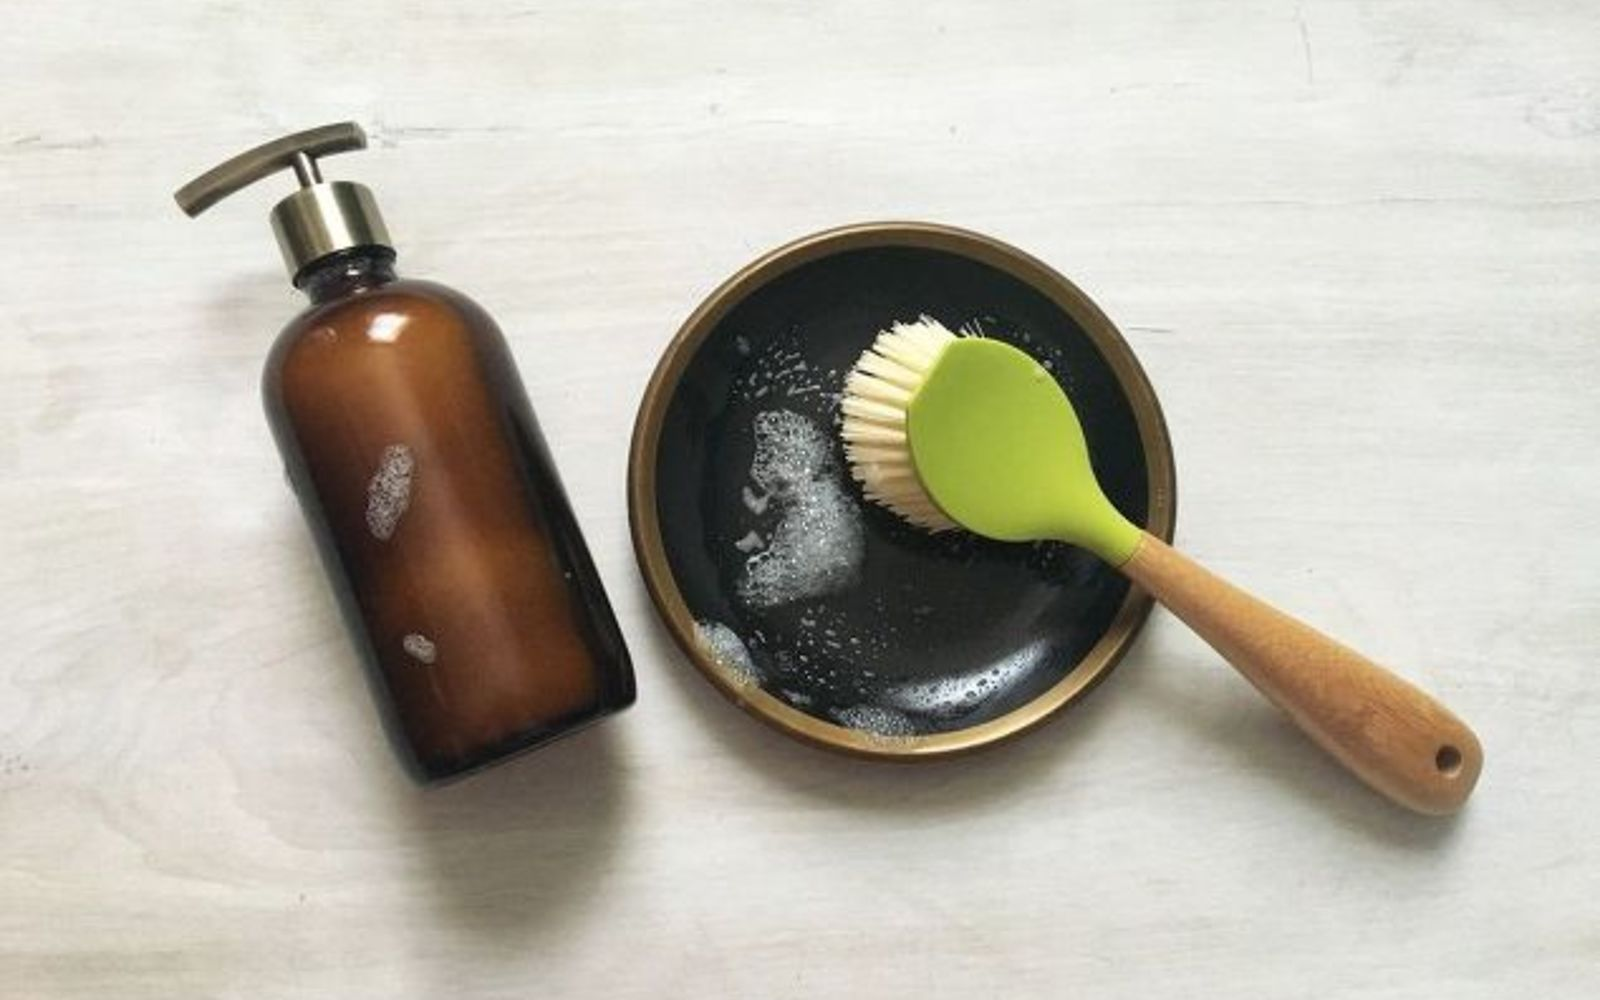 s 11 cleaners from baking soda to make your home sparkling clean, Craft An Essential Oil Dish Soap